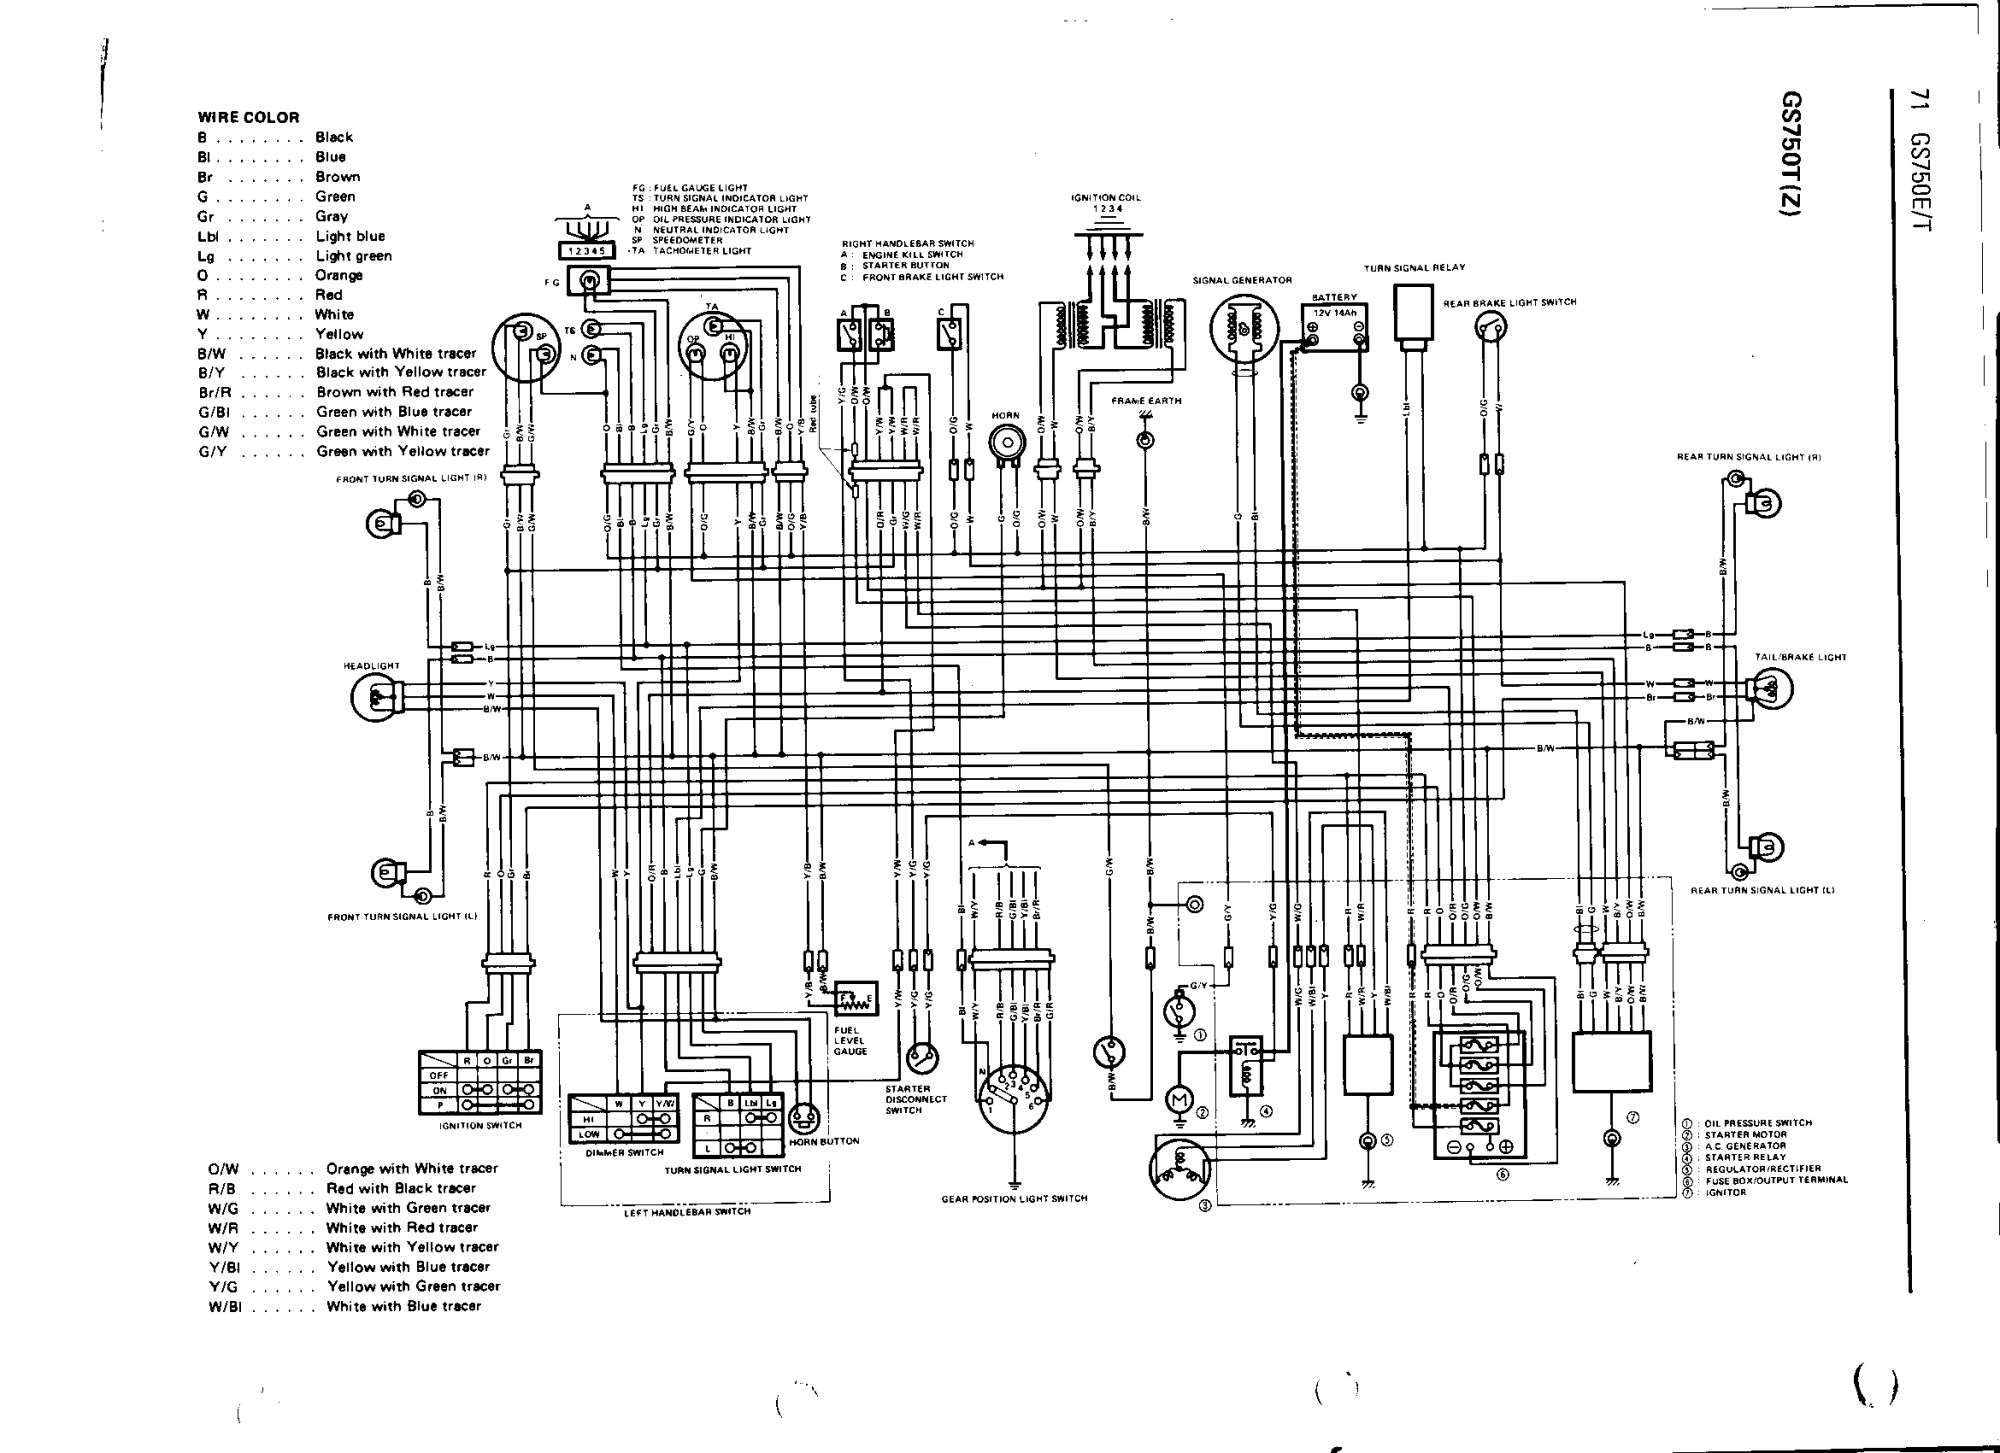 hight resolution of gs450 wiring diagram wiring diagrams gs450 cafe bikecliff s website gs400 wiring diagram gs425 wiring diagram